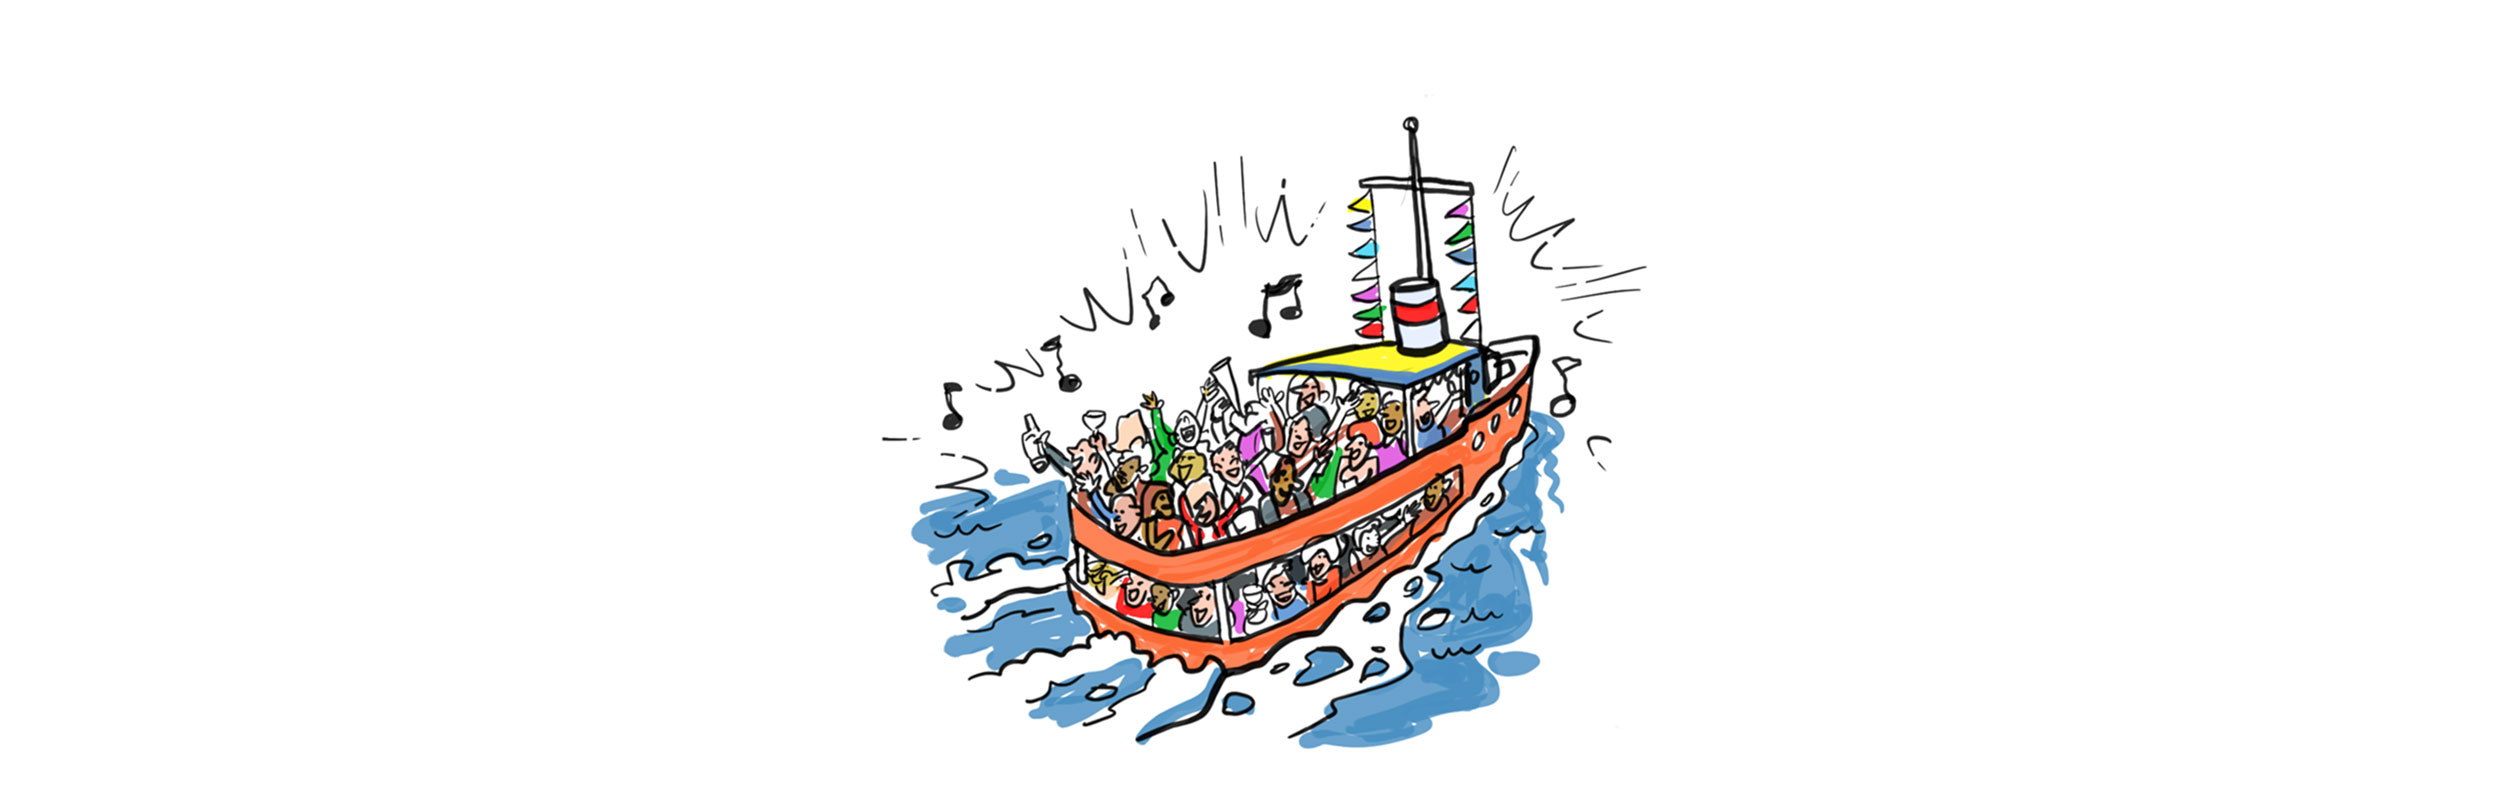 people on boat drawing